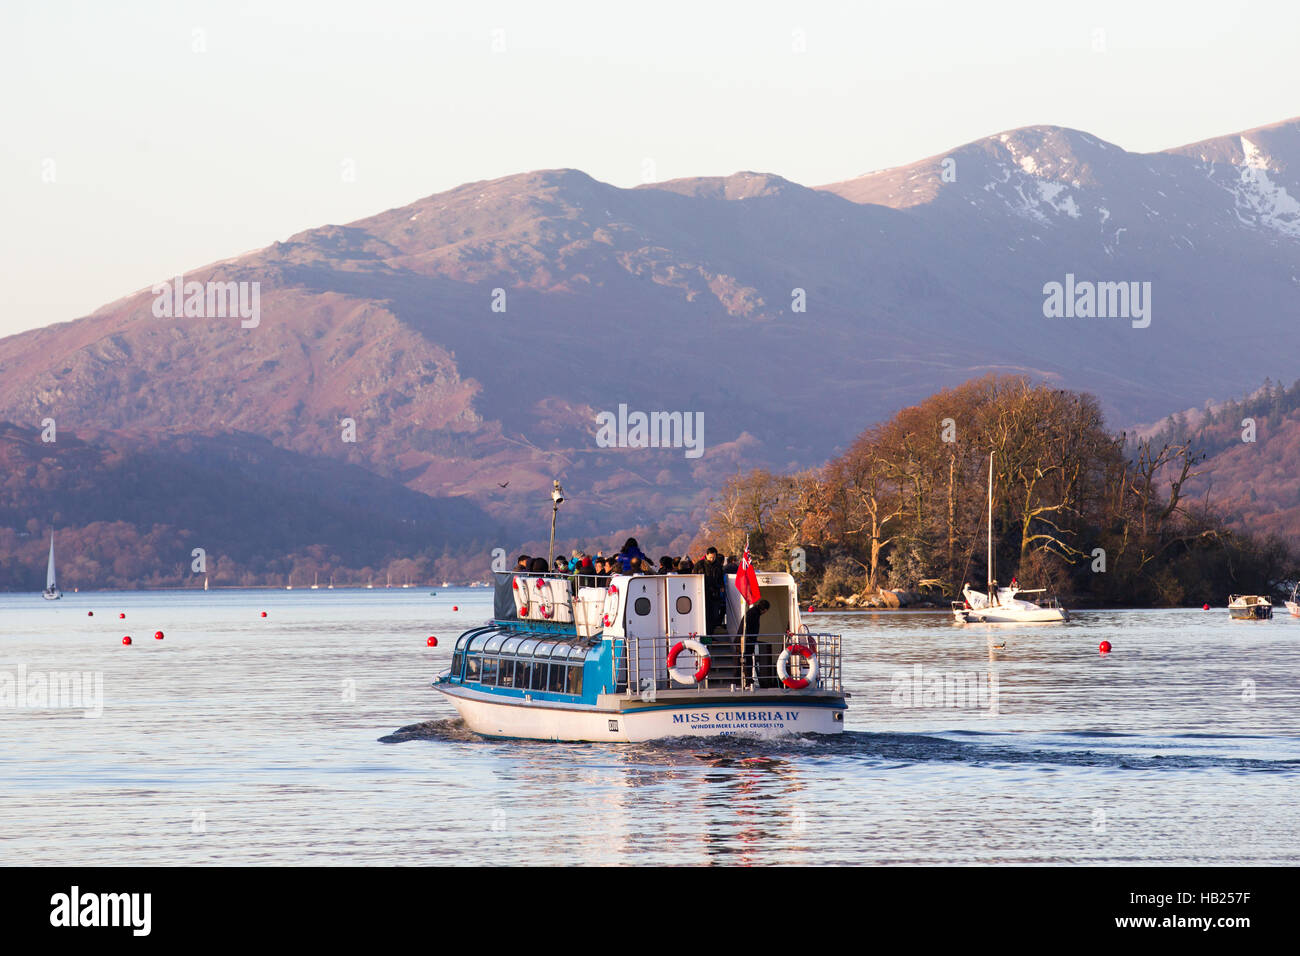 Cumbria, UK. 4th Dec, 2016. UK Cold sunny day on Lake Windermere, snow on fells & sailing on the lake Credit: - Stock Image